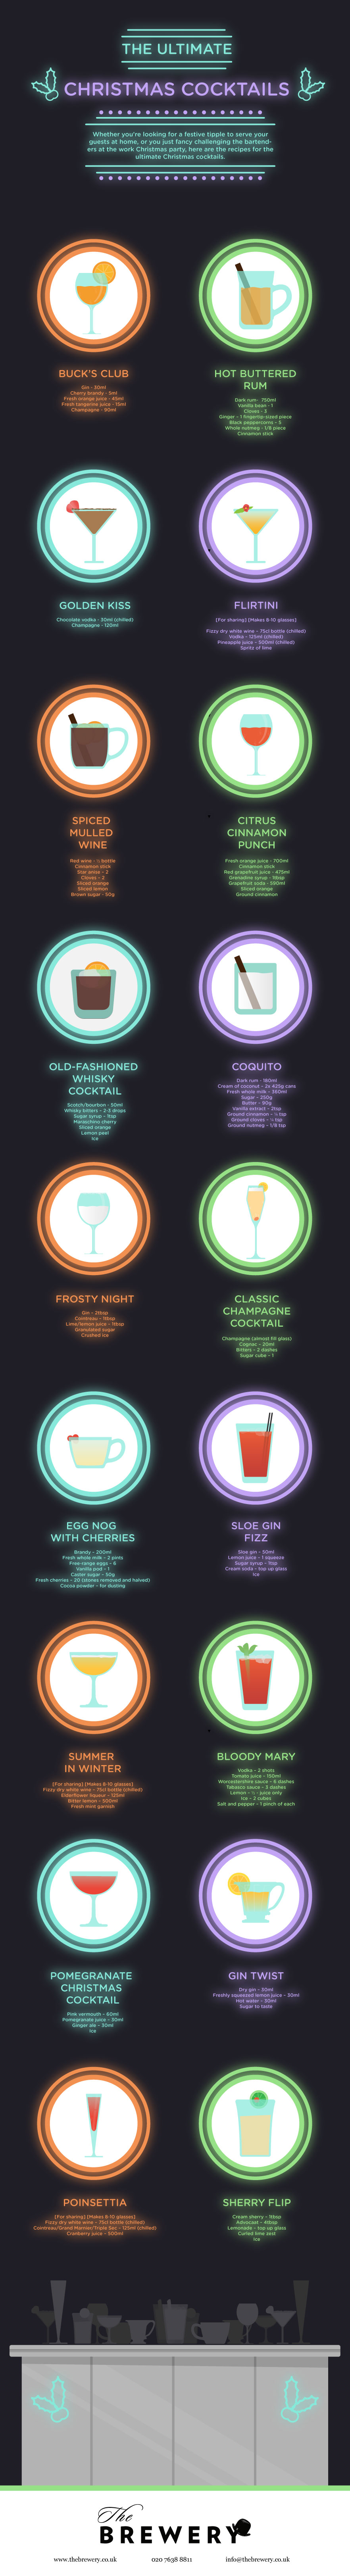 brewery-cocktails-infographic-2015